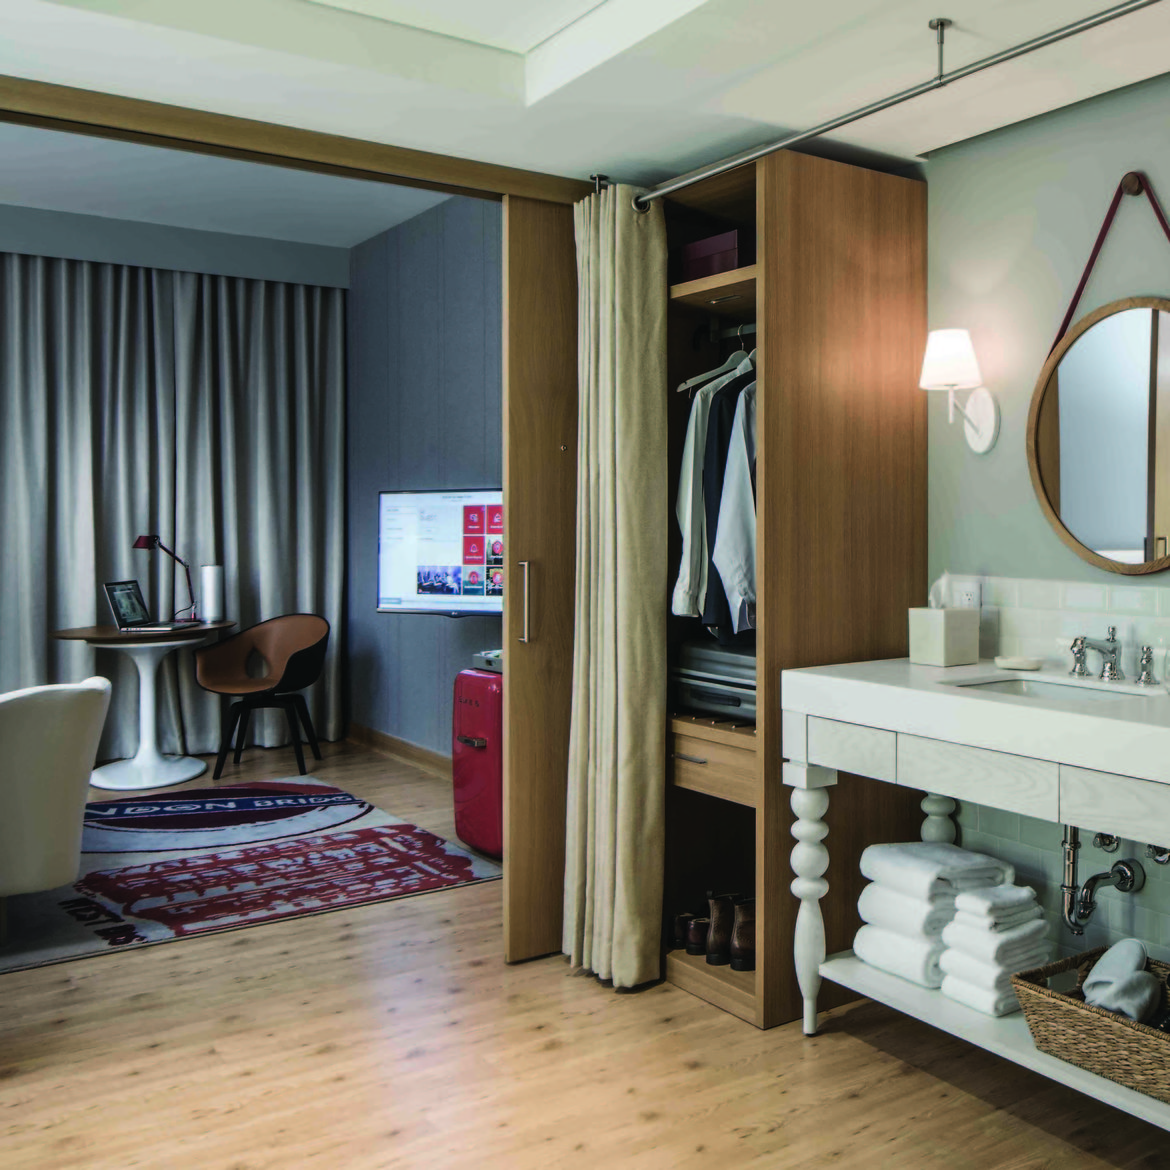 Virgin Hotel Chicago designed by Rockwell Group Europe guest room